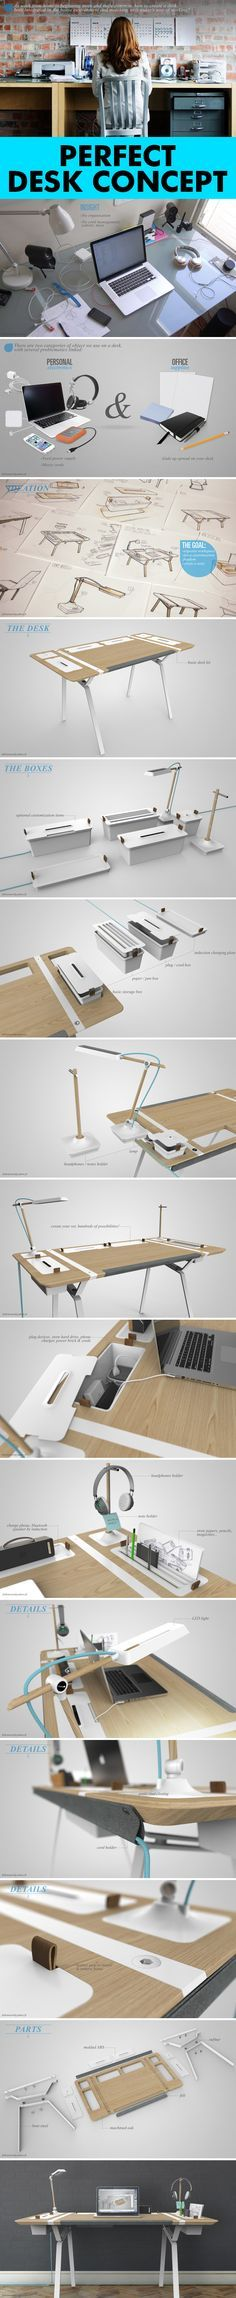 Good Very Cool Desk Concept By Francois Dransart, Via Behance *** Good Looking